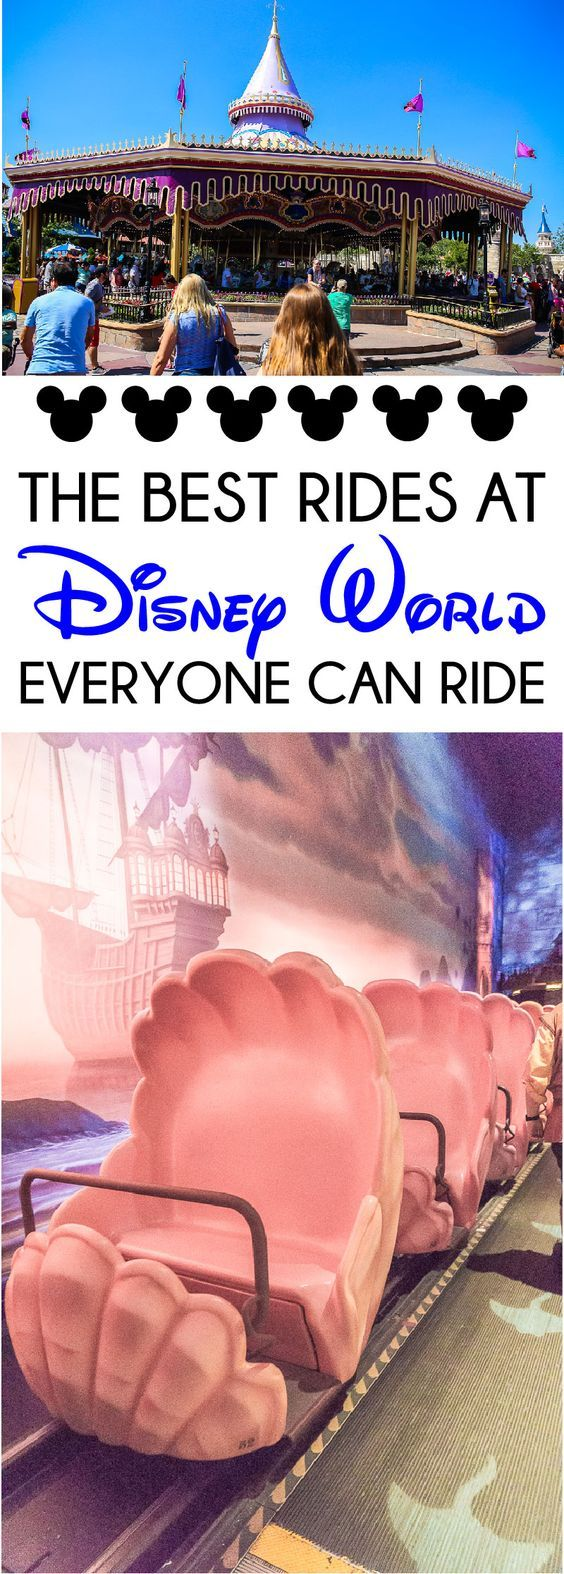 The Best Disney World Rides for All Ages | Disney | Viajes ...